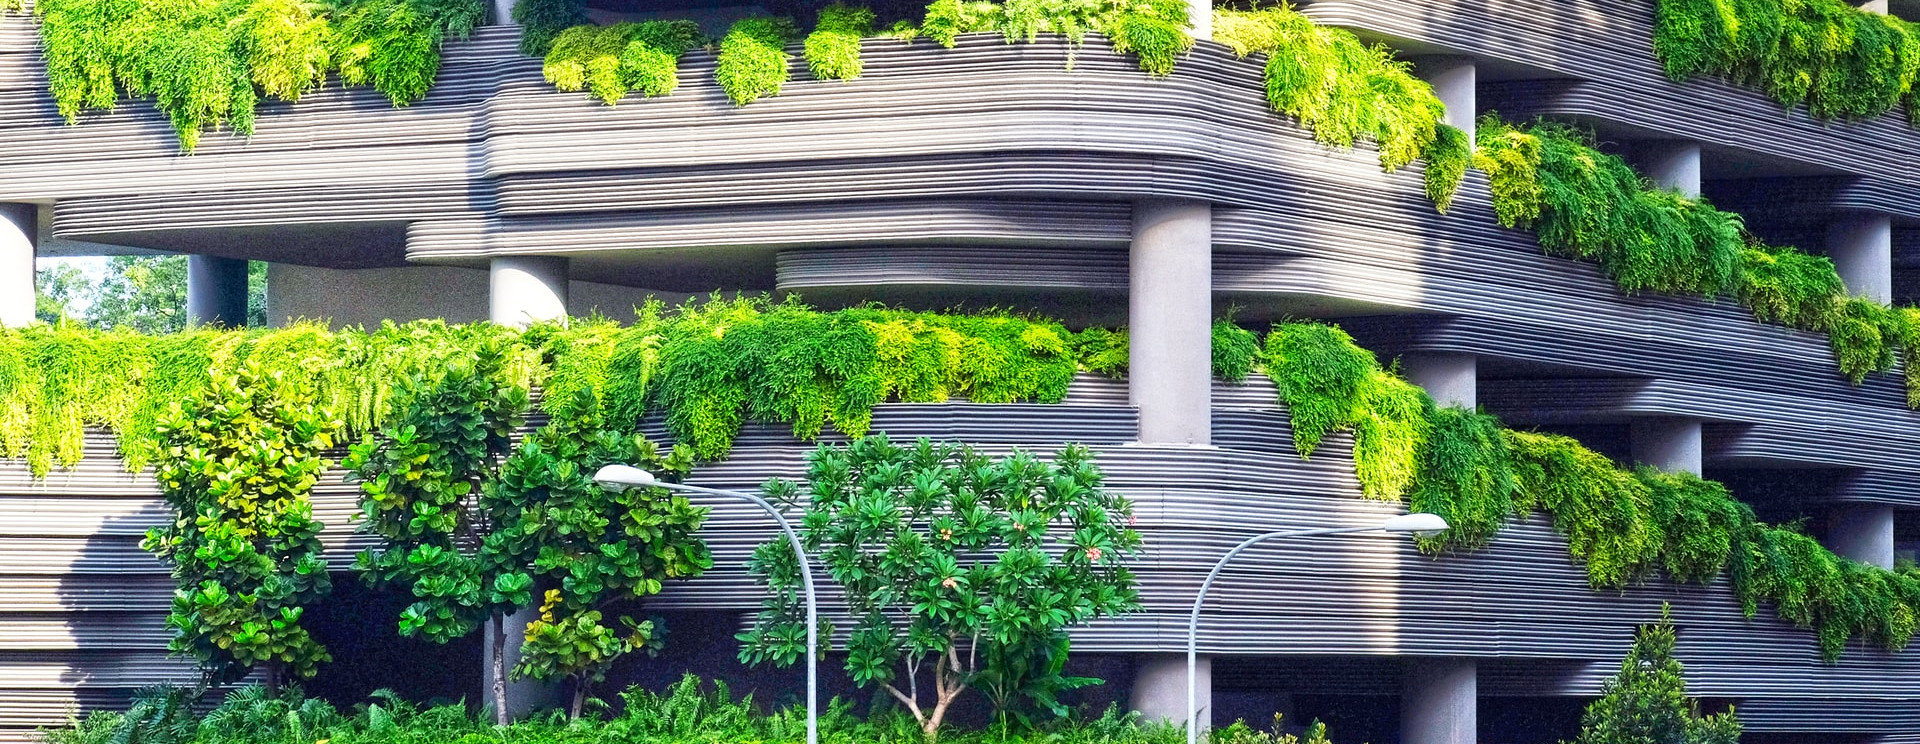 How Bioclimatic Upgrades Can Make Buildings Multifunctional